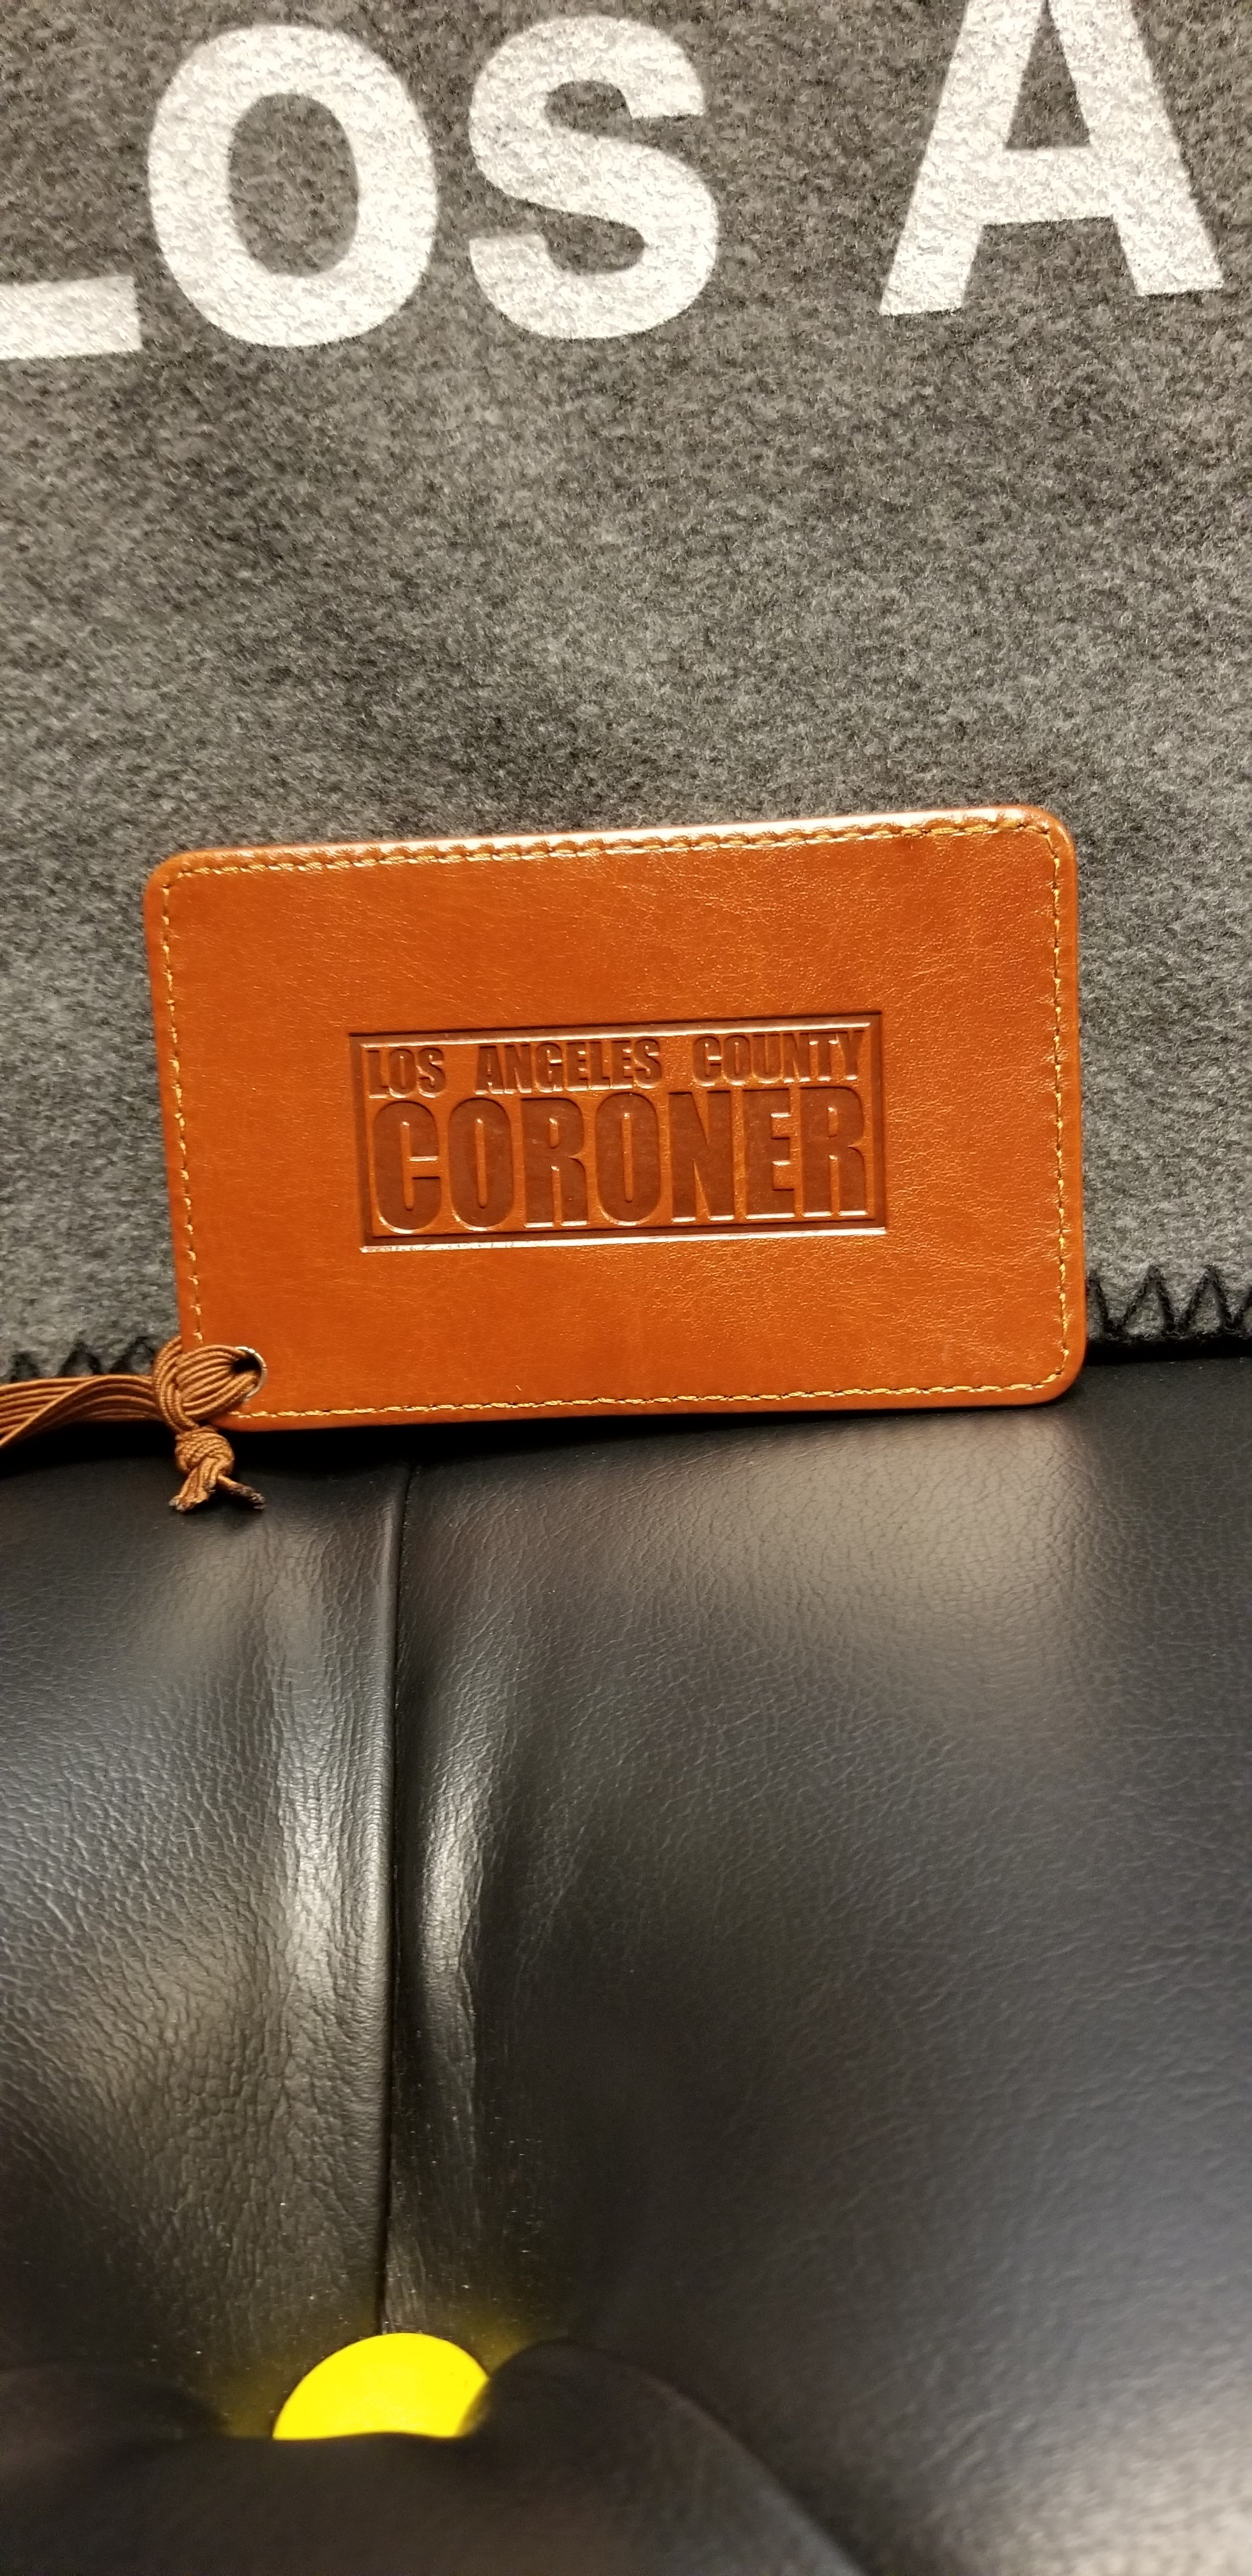 Coroner Luggage Tag